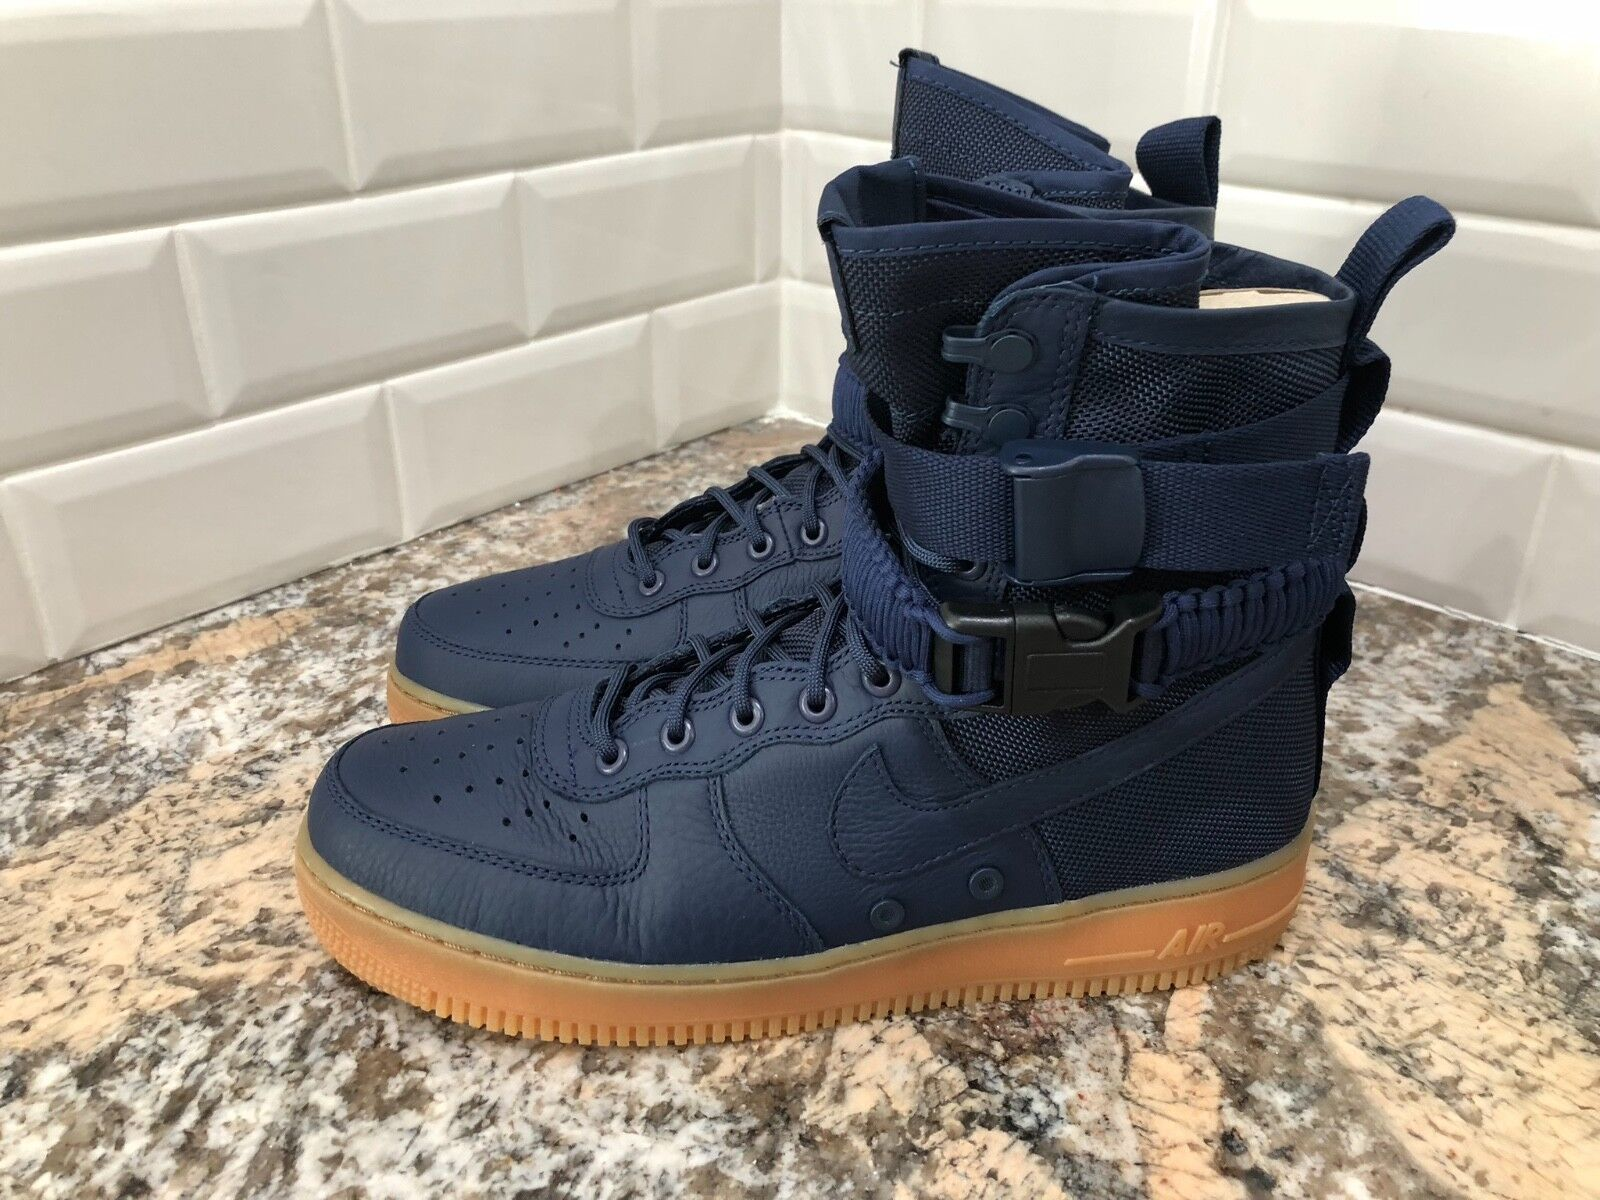 Nike SF AF1 Air Force 1 Special Field Minuit bleu Marine Haut Taille 10 864024 -400